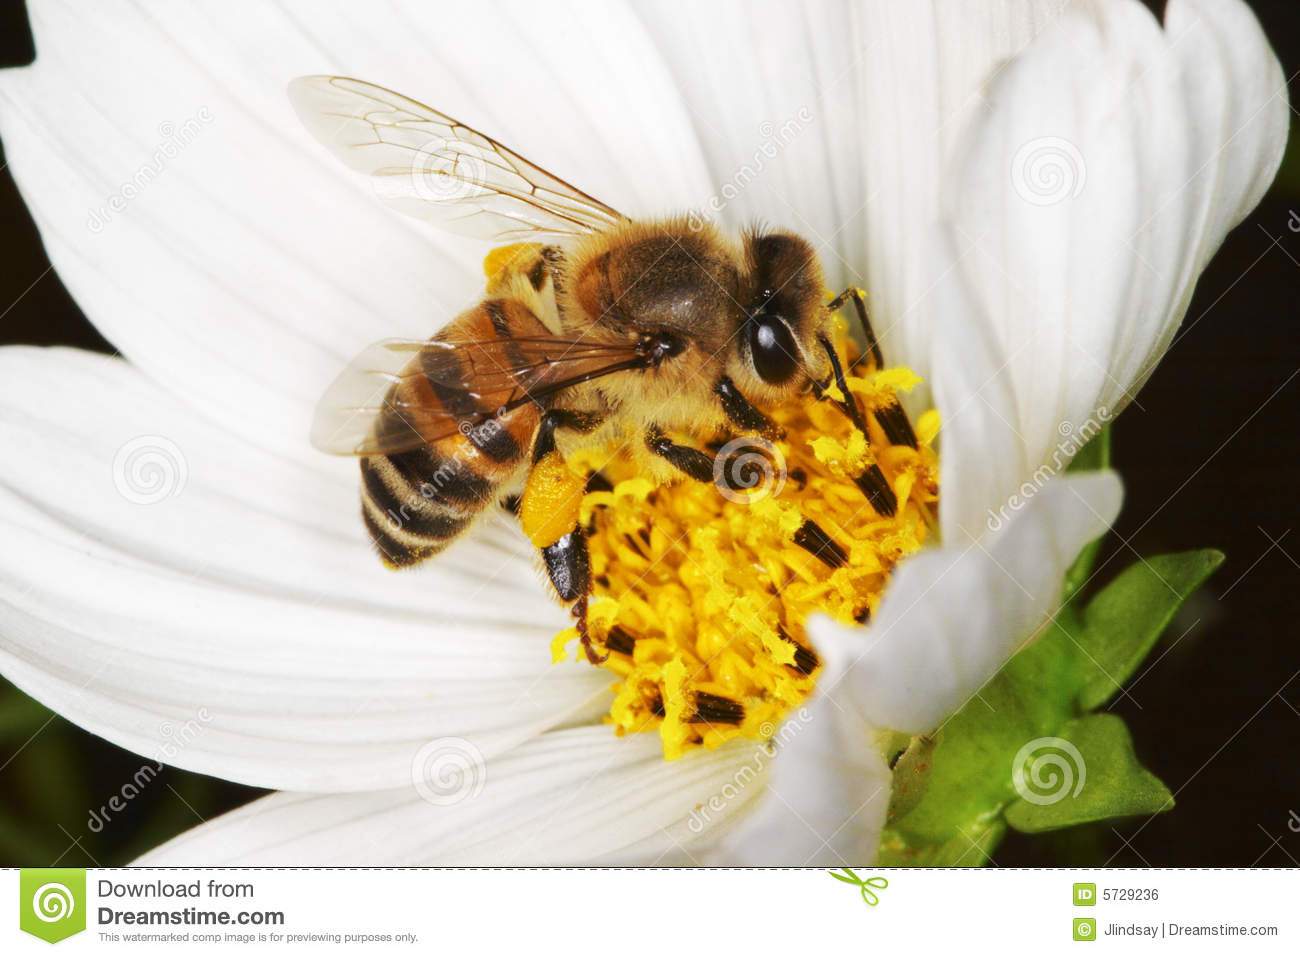 African honey bee on a white flower